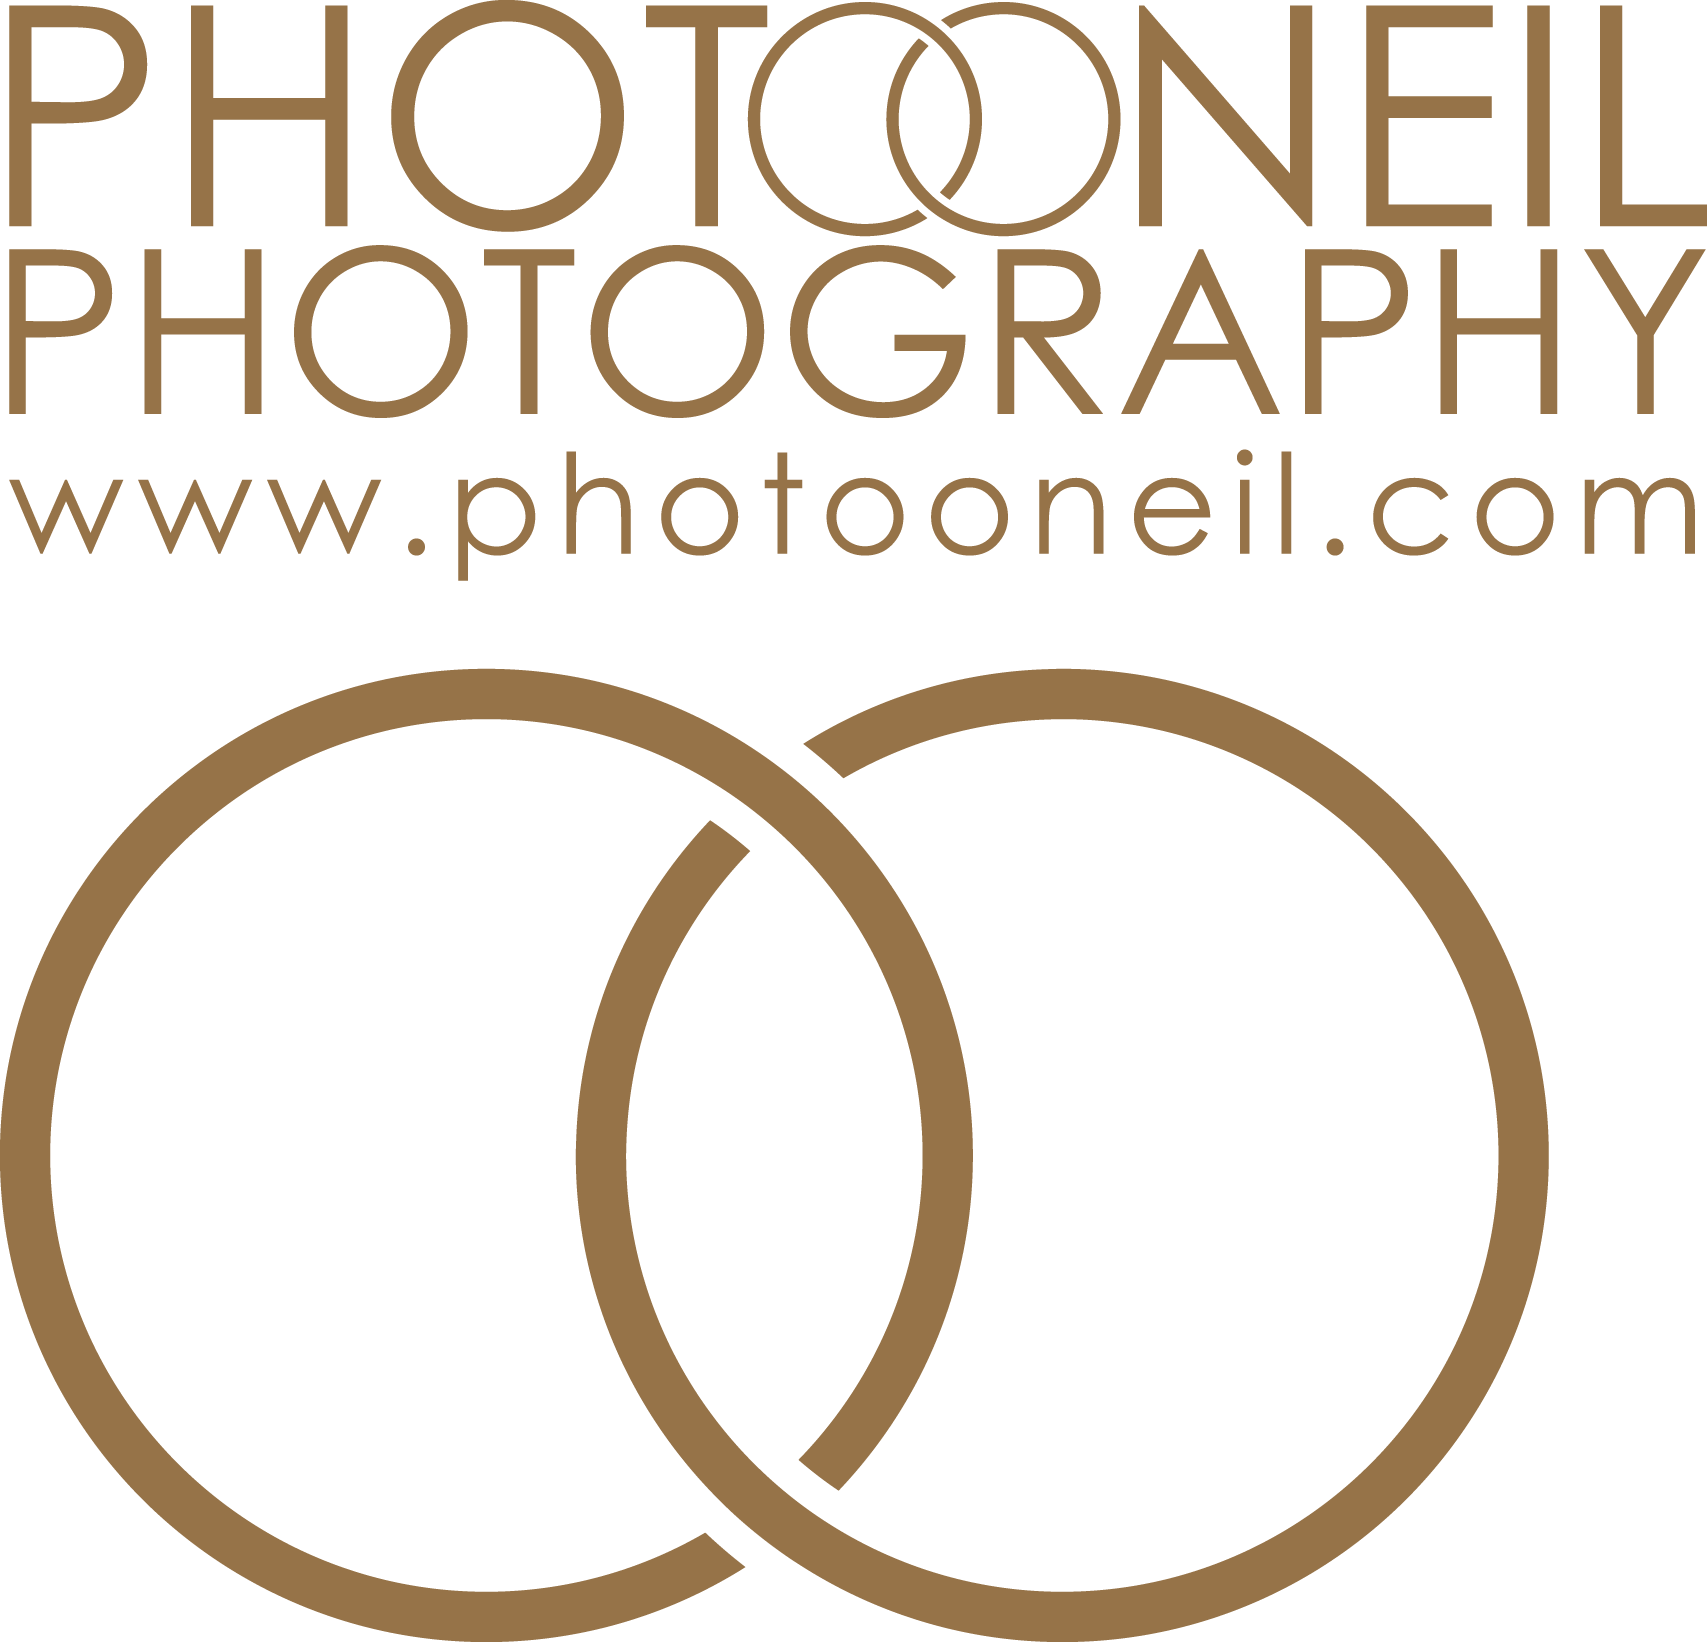 PHOTOONEIL PHOTOGRAPHY - Goa Wedding Photographer - Neil Rodrigues